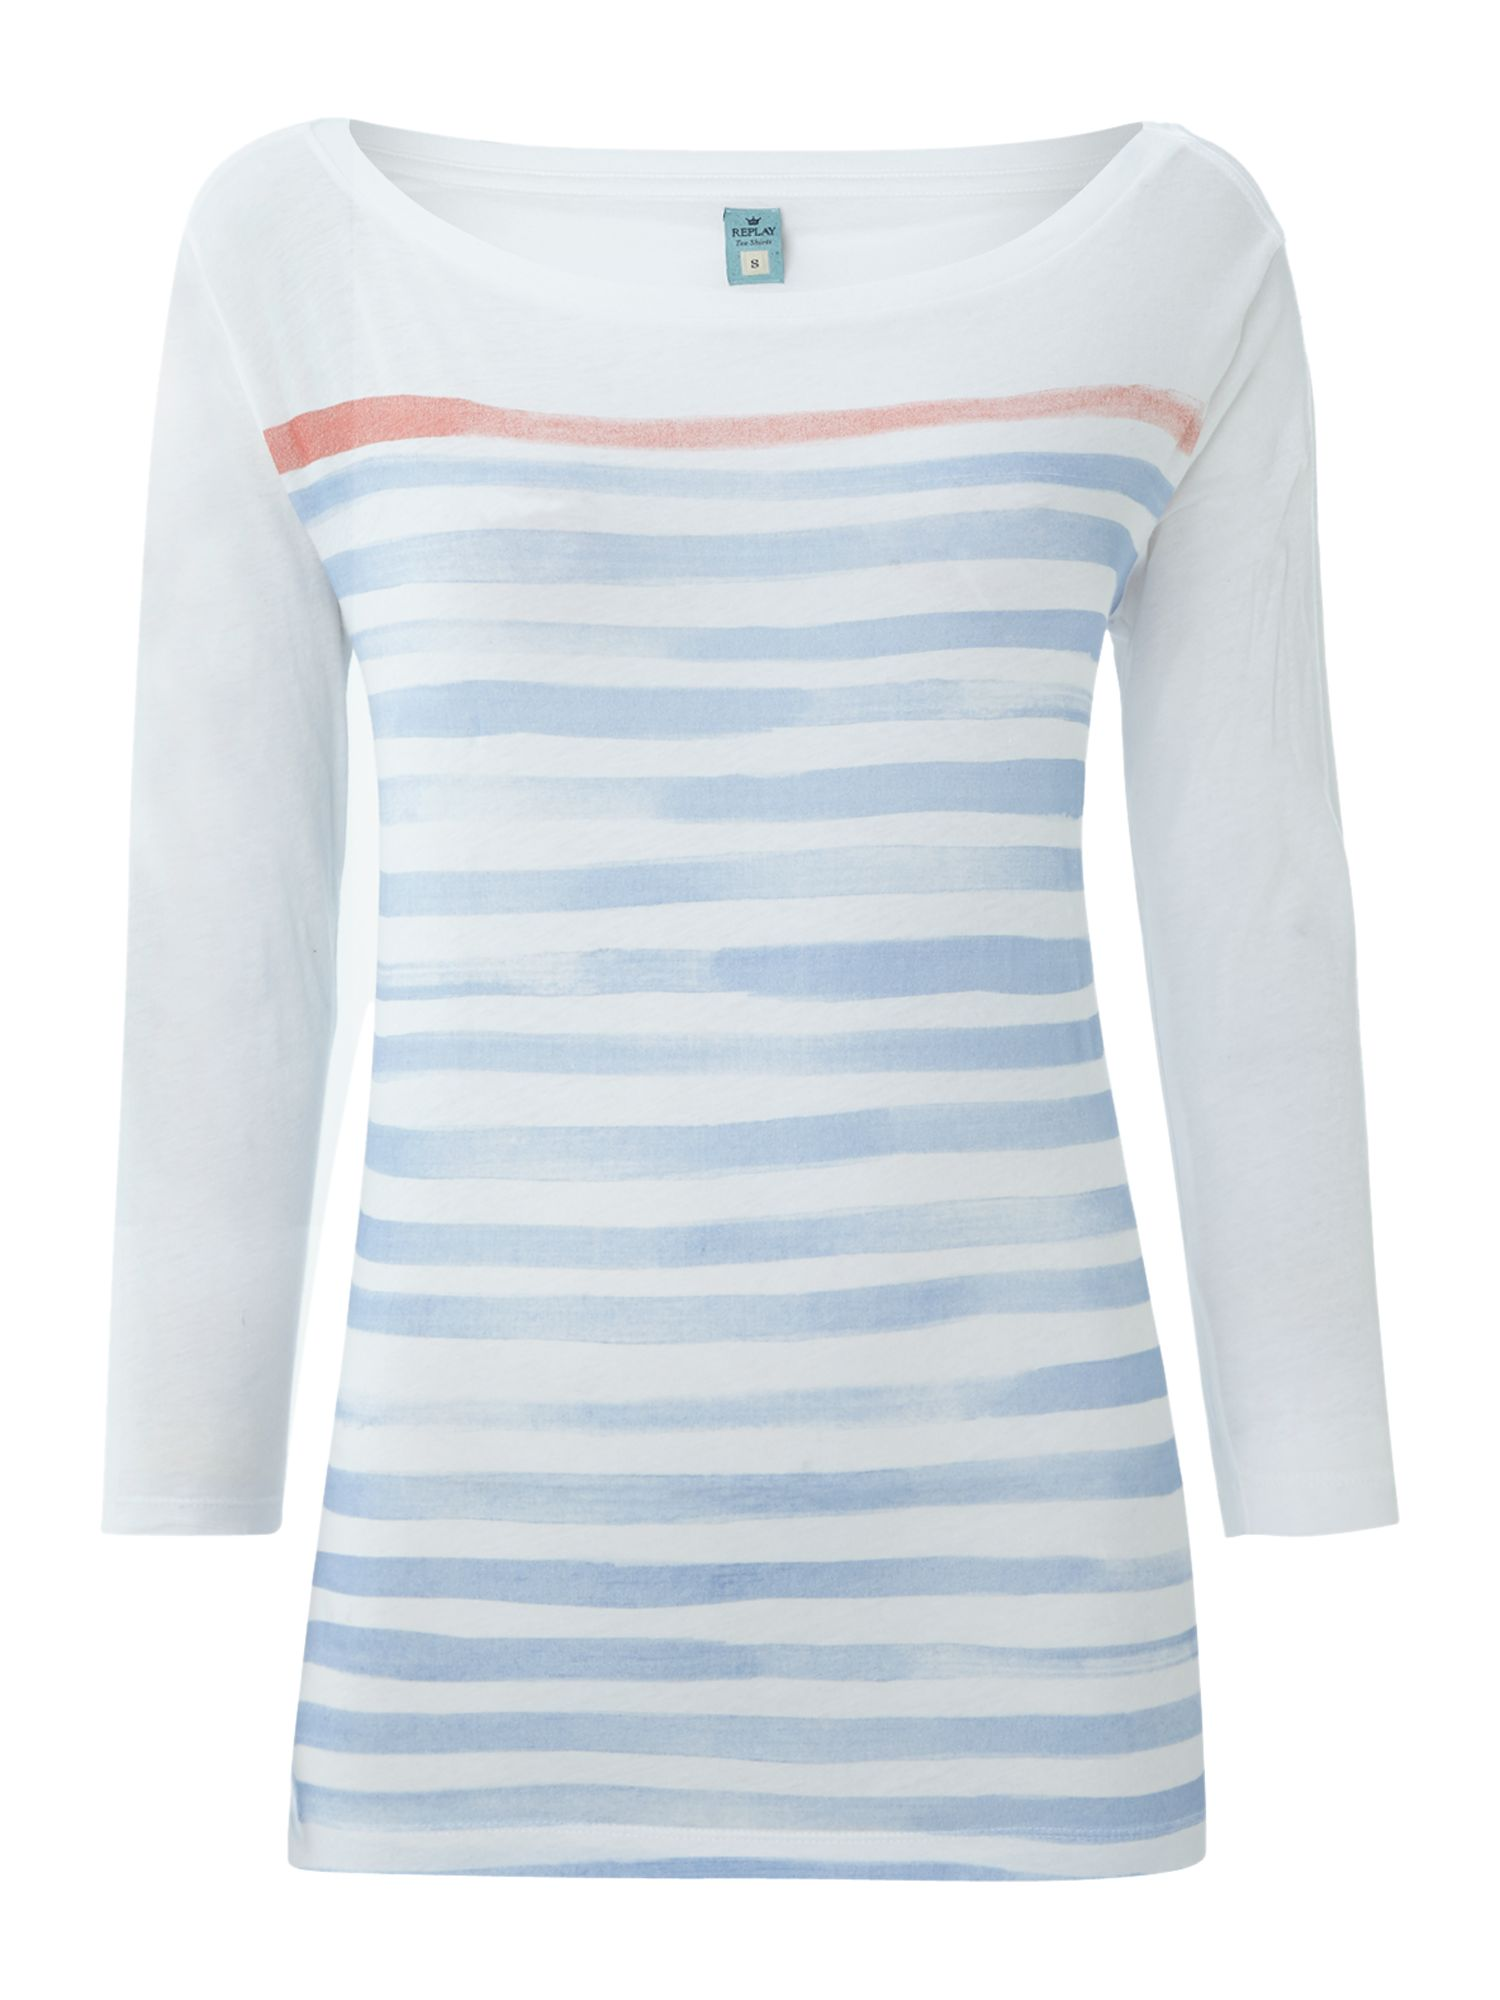 Light cotton jersey t-shirt